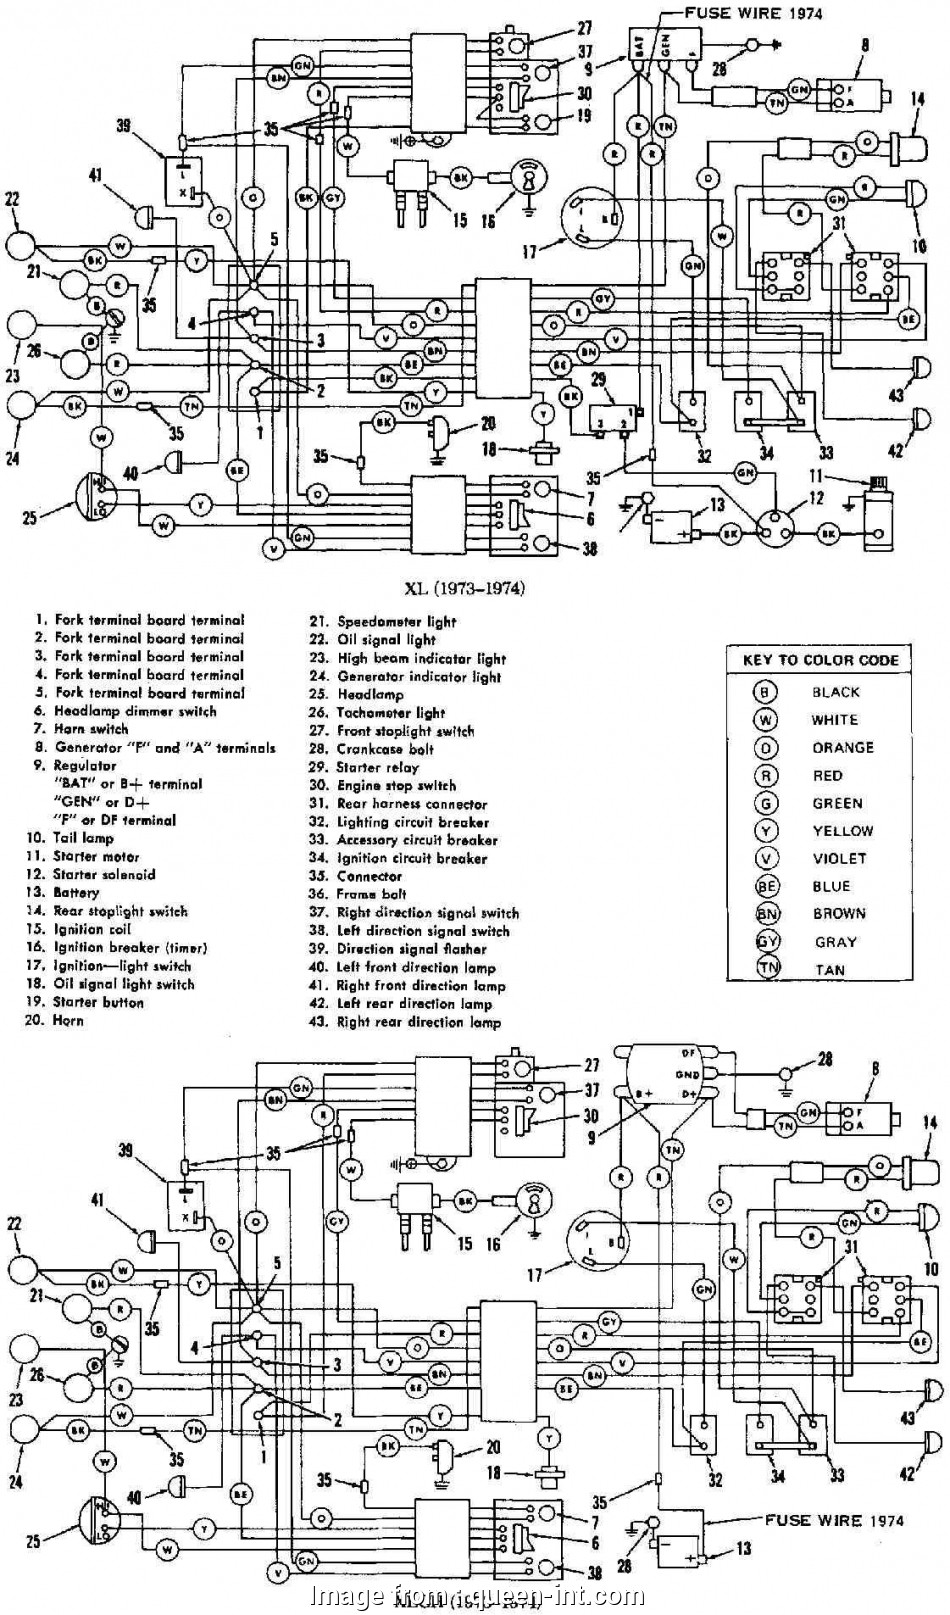 Shovelhead Starter Relay Wiring Diagram Simple Shovelhead